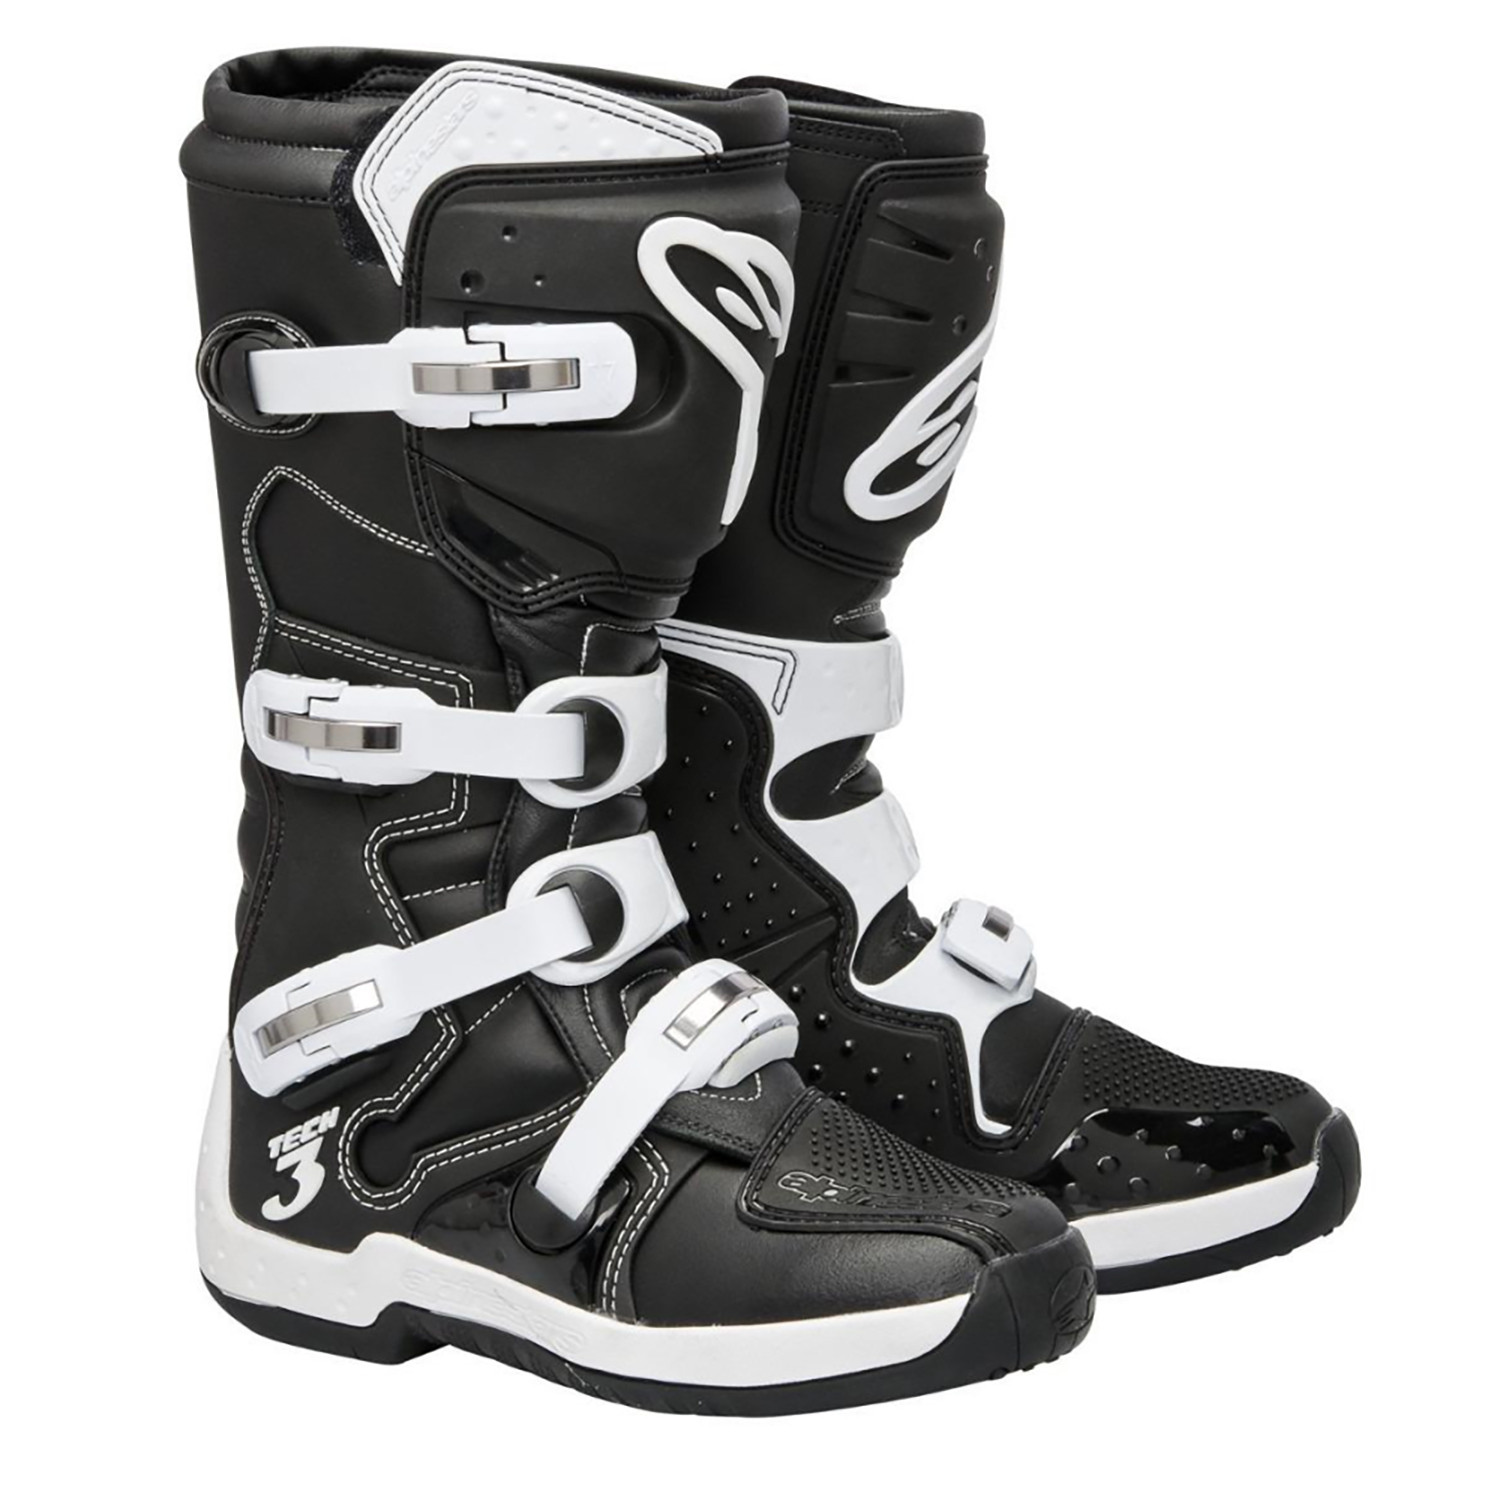 Botas Moto Cross Enduro Alpinestars Tech 3 Negro Original Um